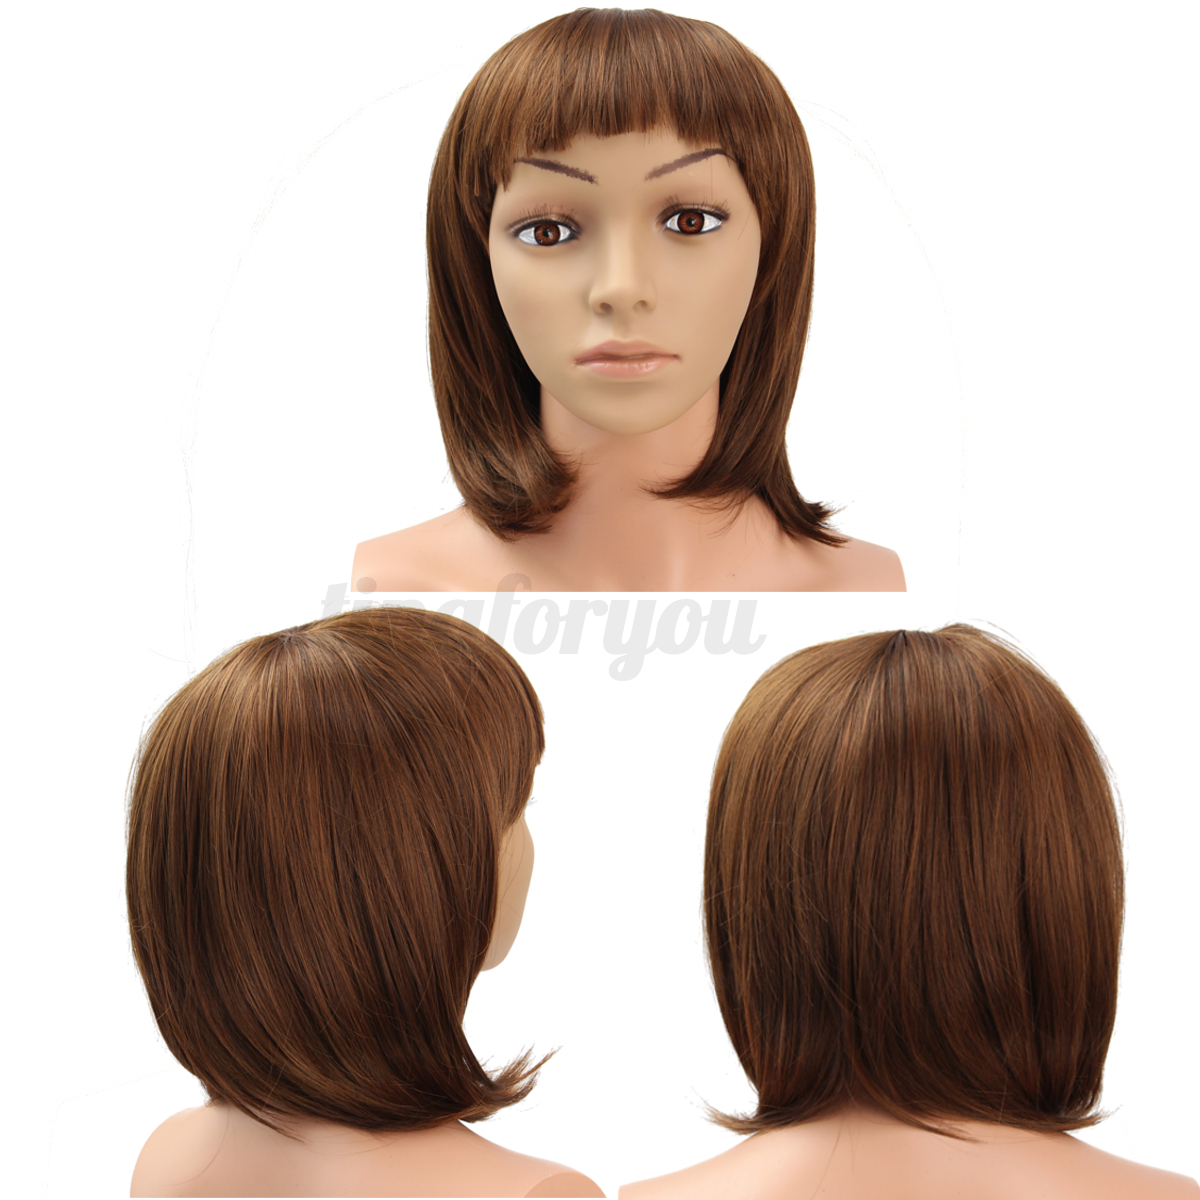 These hairpieces and hair extensions are not only great for women with some hair loss, but are also loved by women who just want to add some length or pump up the volume for a night on the town! Unlike full wigs, hair pieces and extensions do not cover the entire head.